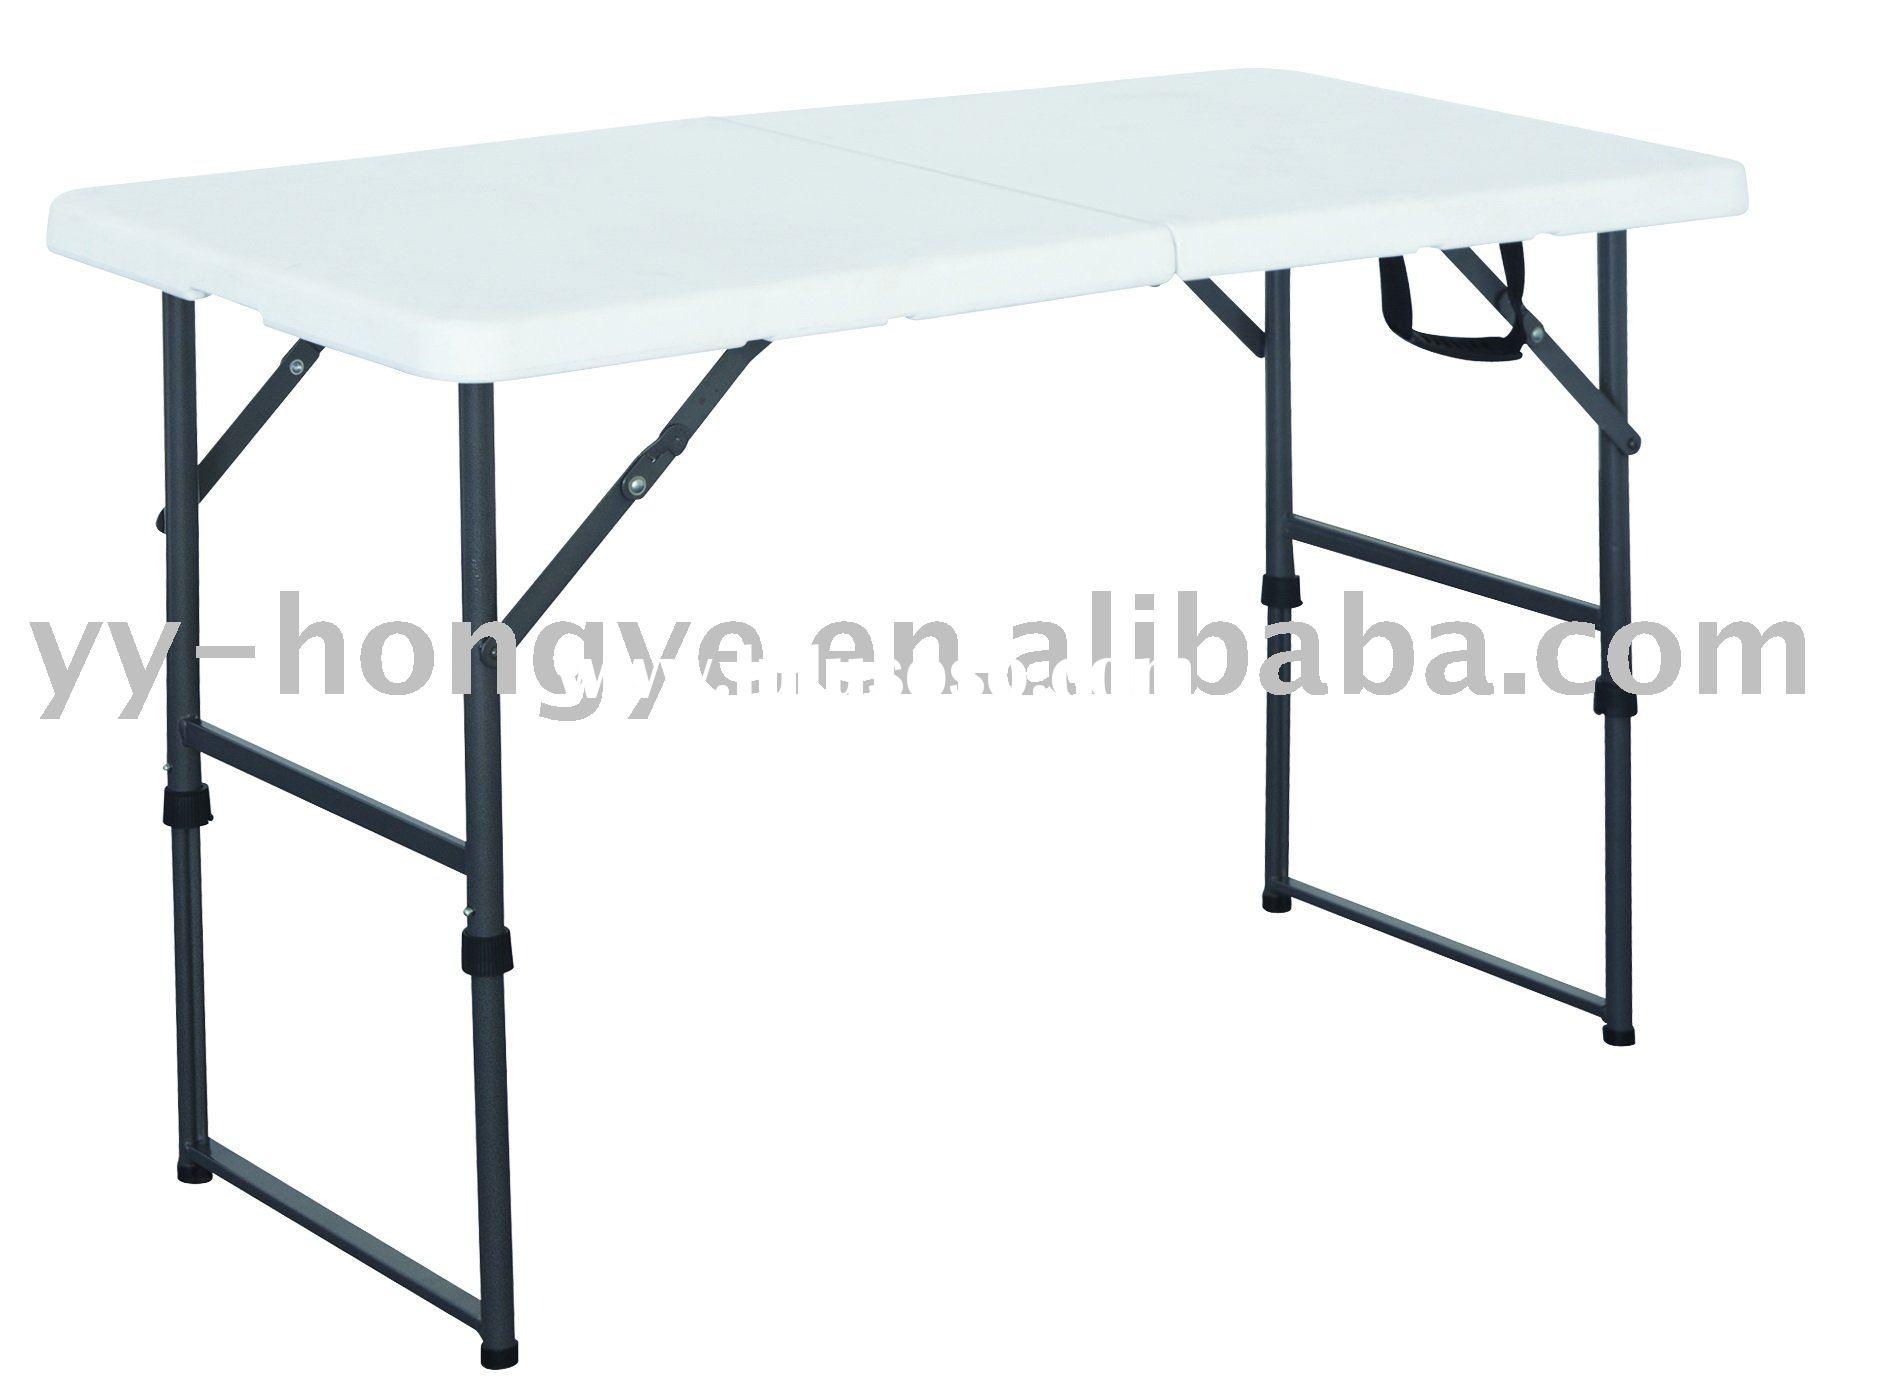 Awesome decor of small plastic folding table with folding table rectangular folding  table uctqcdh